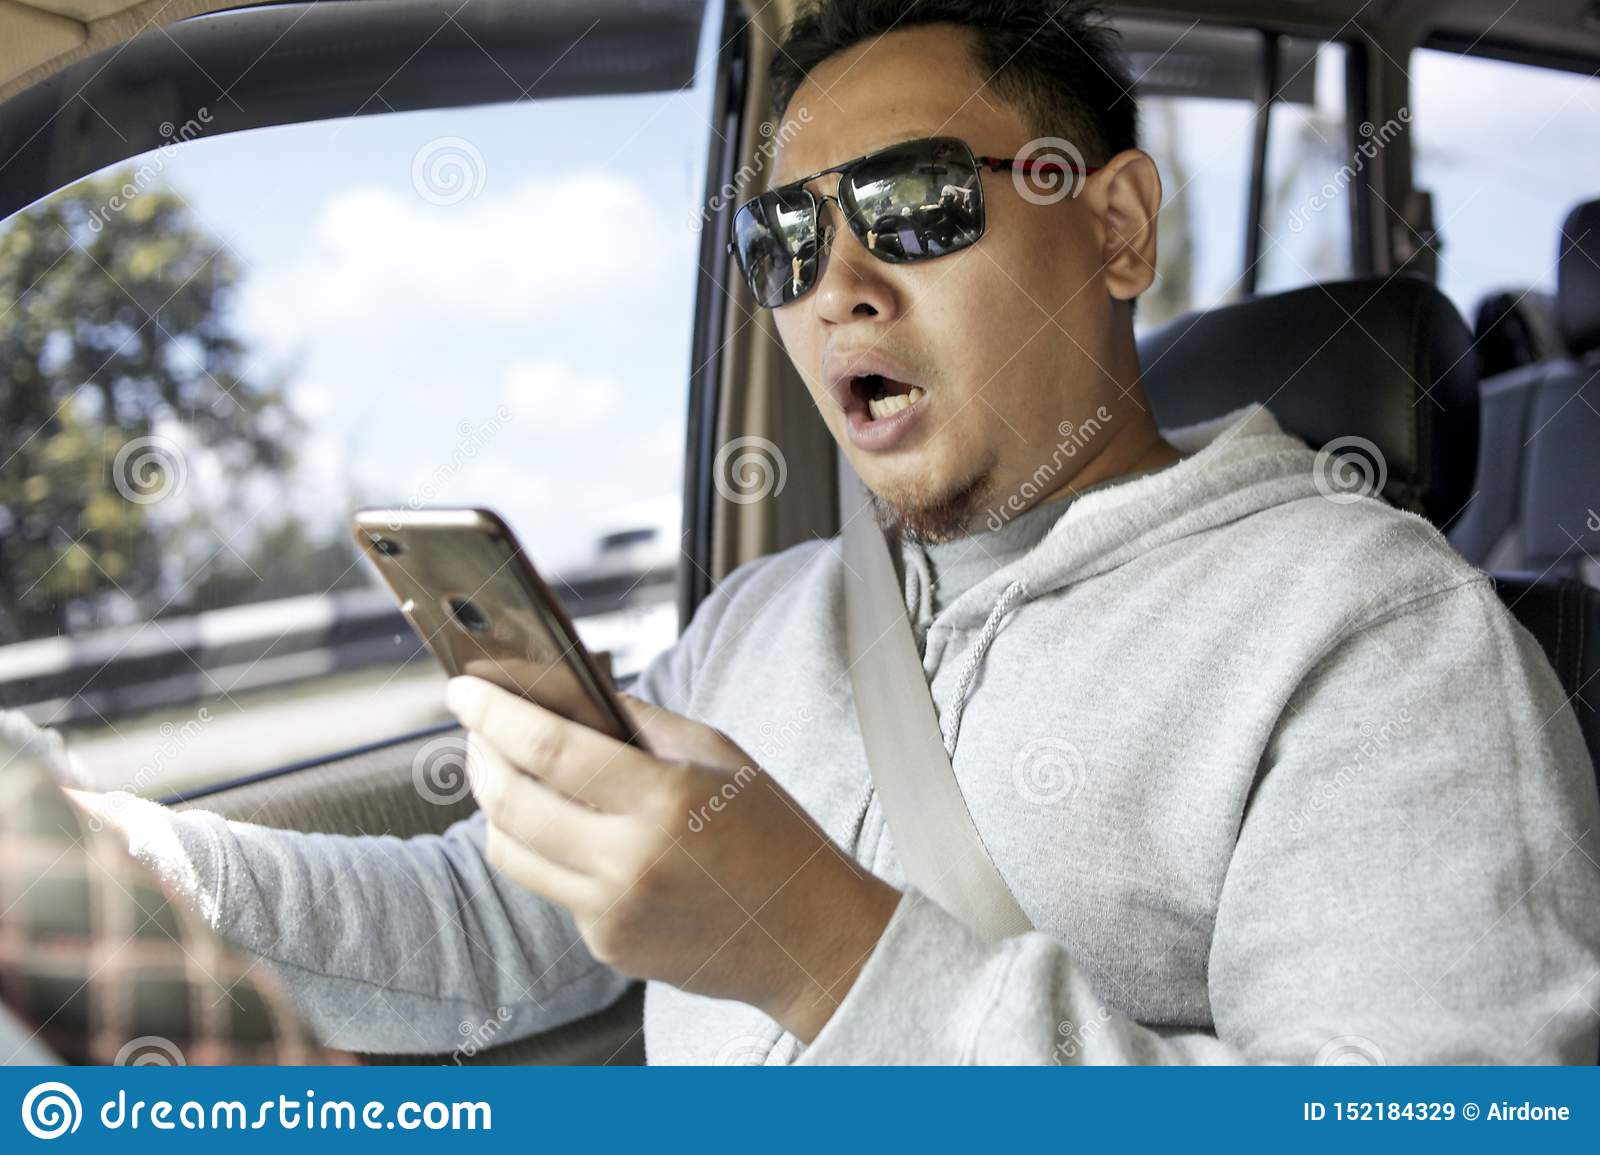 Male Driver Reading Message on Smart Phone While Driving a Car